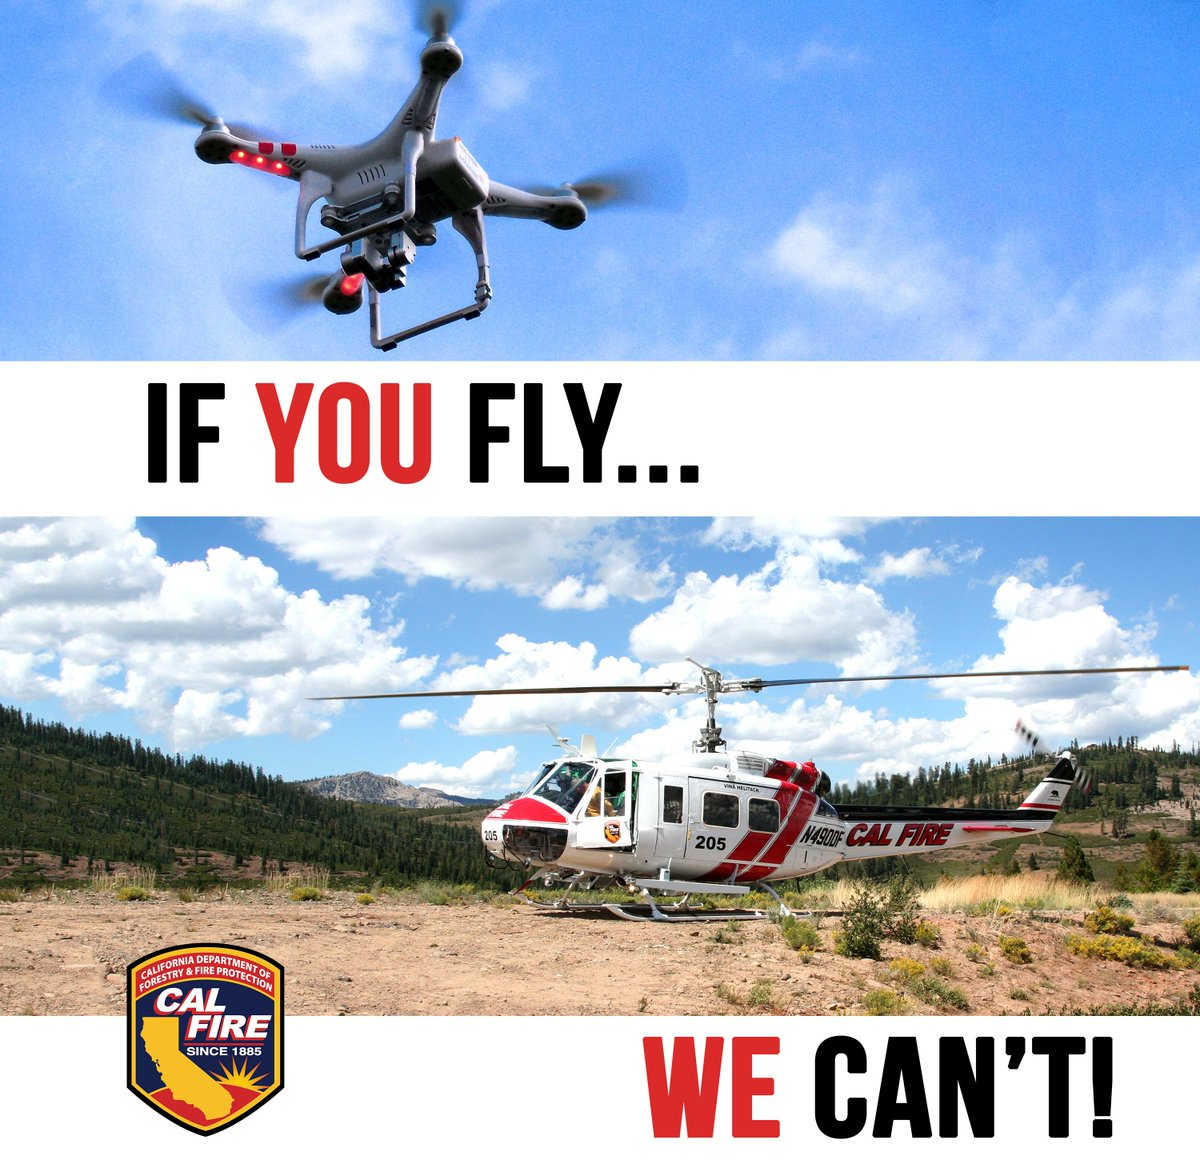 CAL FIRE asks the public to NEVER fly #drones near wildfires. Remember: #IfYouFlyWeCant! http://t.co/X4VSBCNr2T http://t.co/PYzYcBiP5p